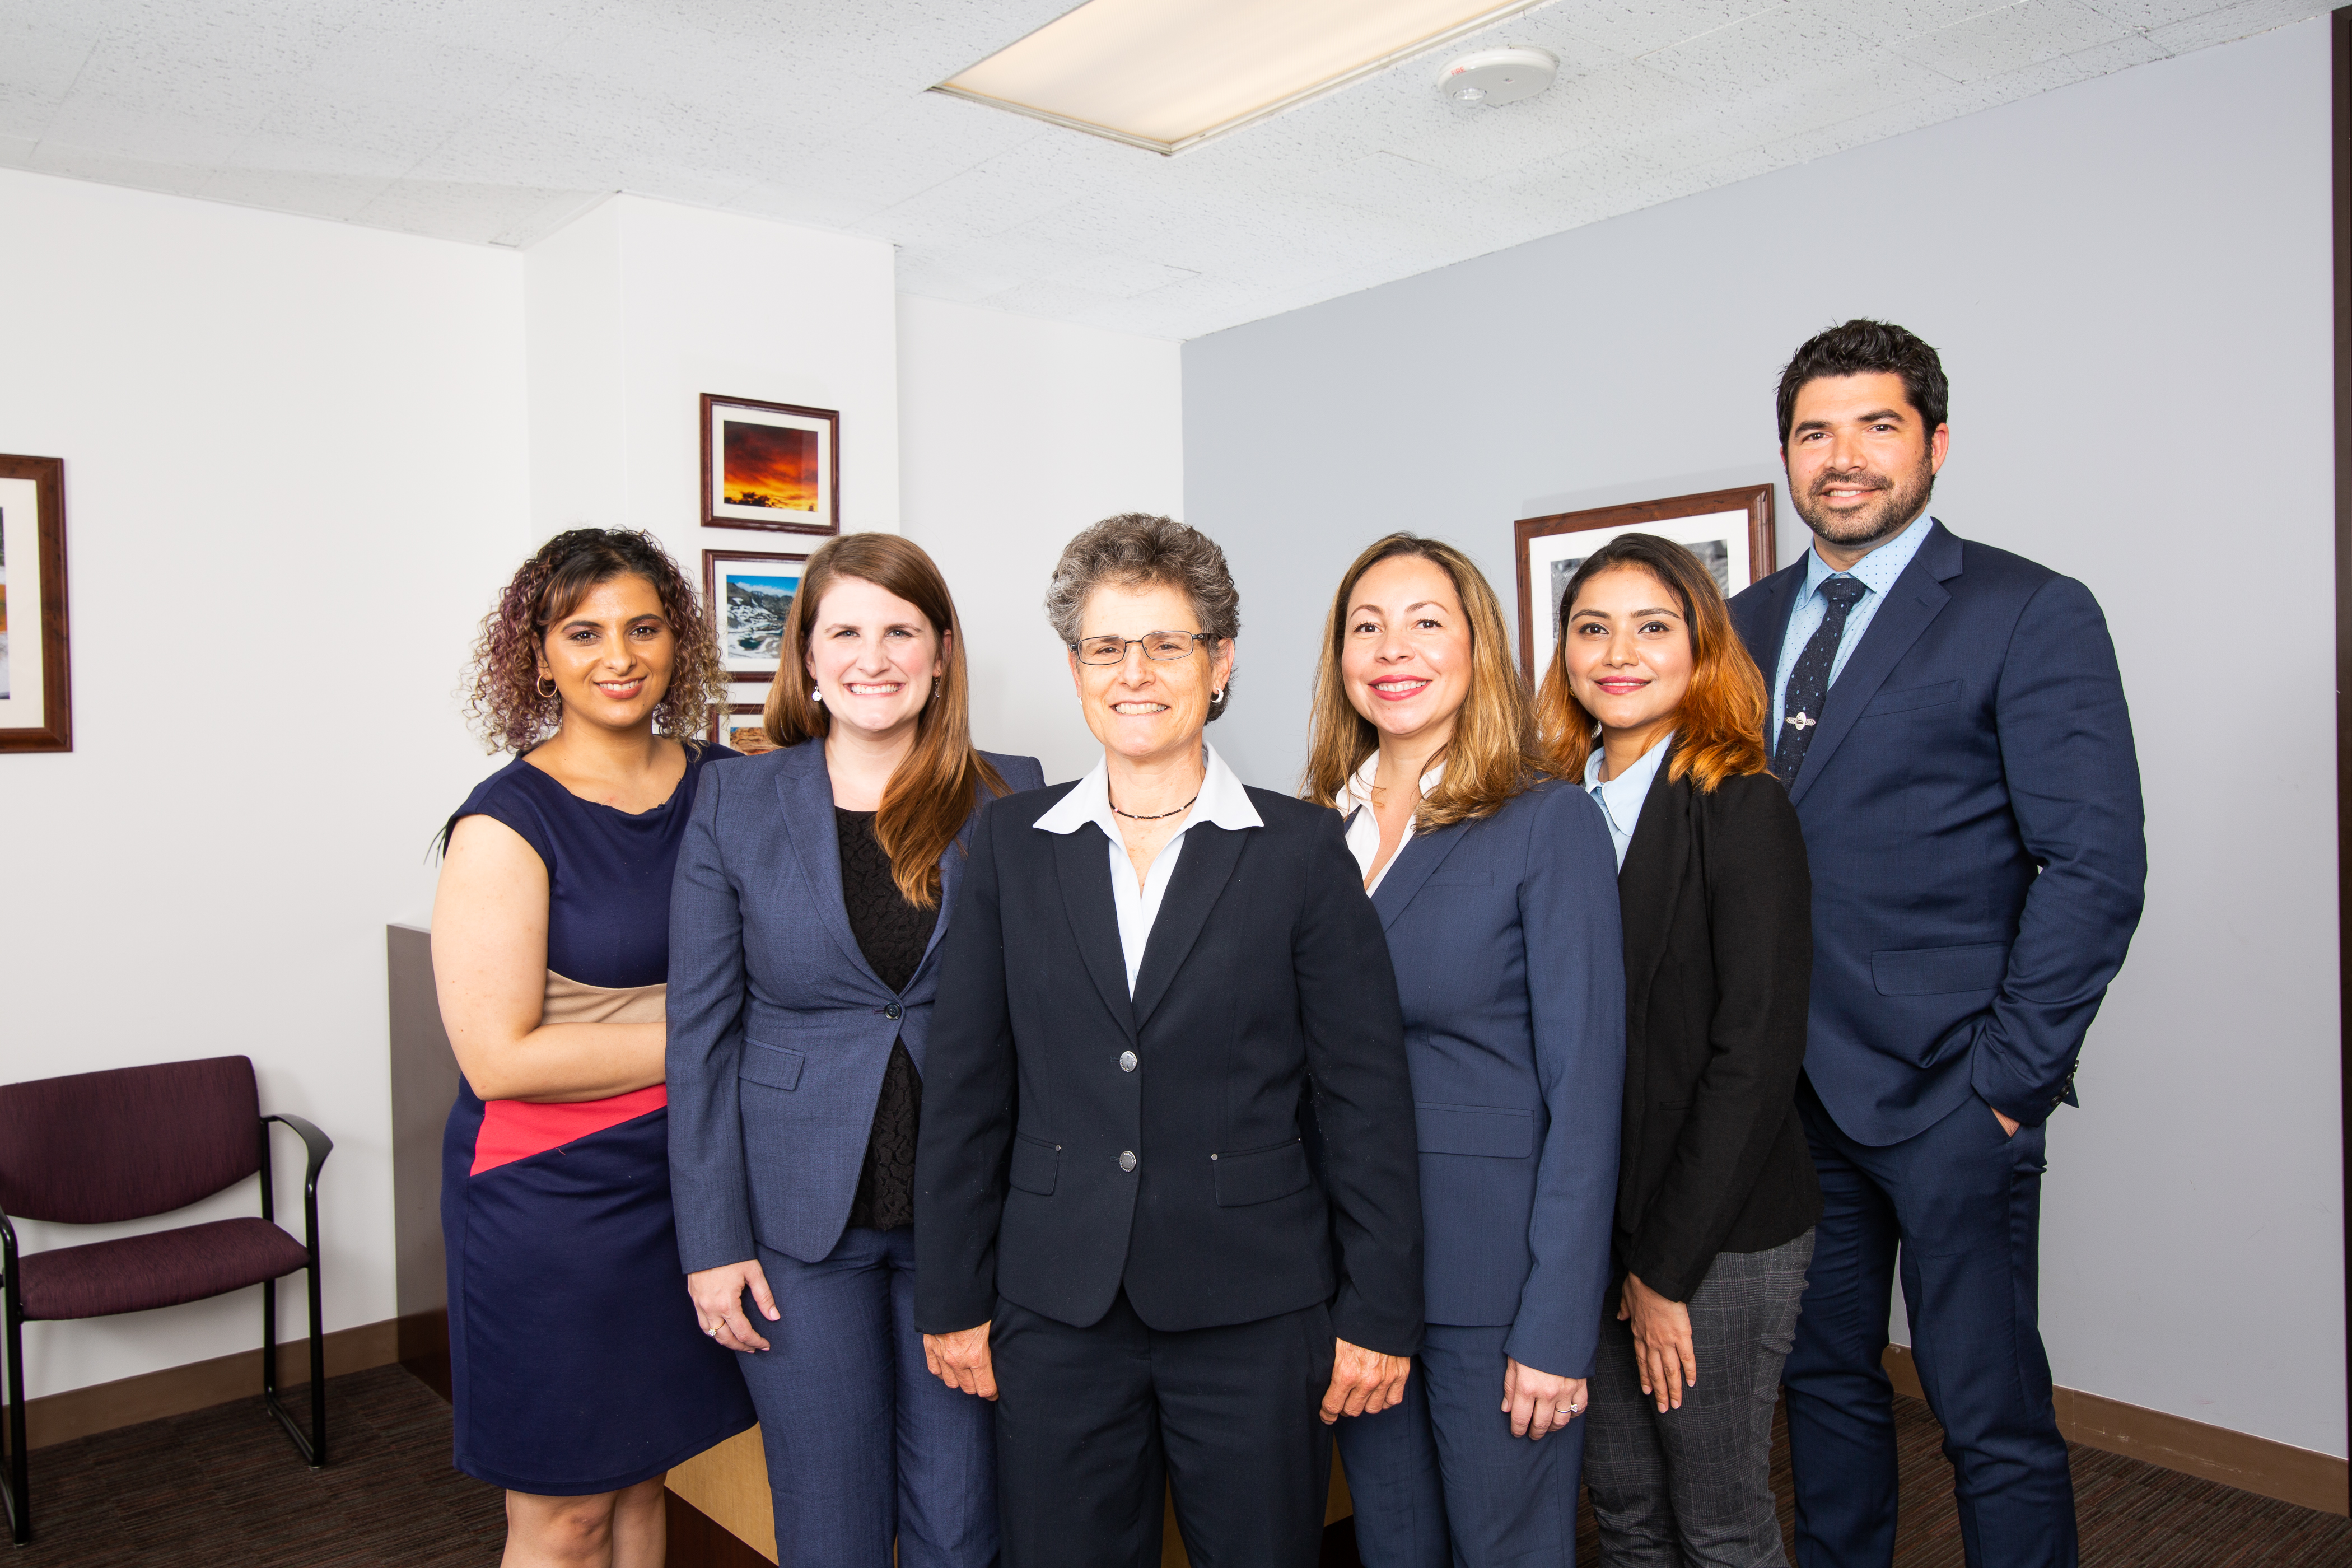 Workers' Compensation Attorneys, San Francisco